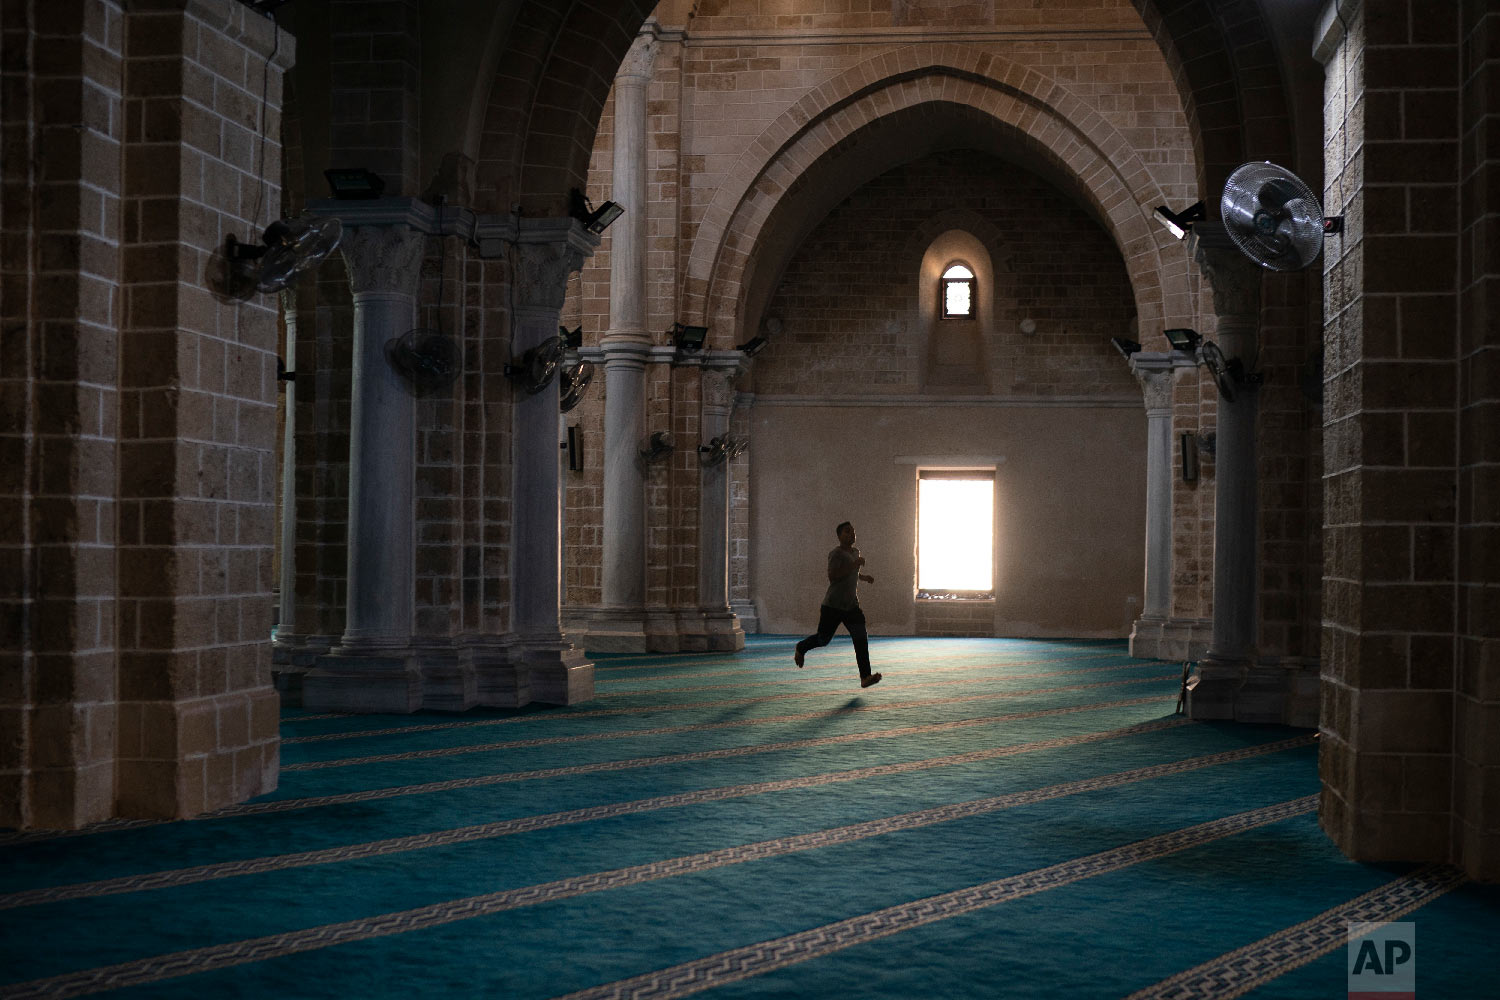 A man runs as he arrives a few minutes late for the afternoon prayer in a mosque in Gaza City, Sept. 14, 2018. (AP Photo/Felipe Dana)